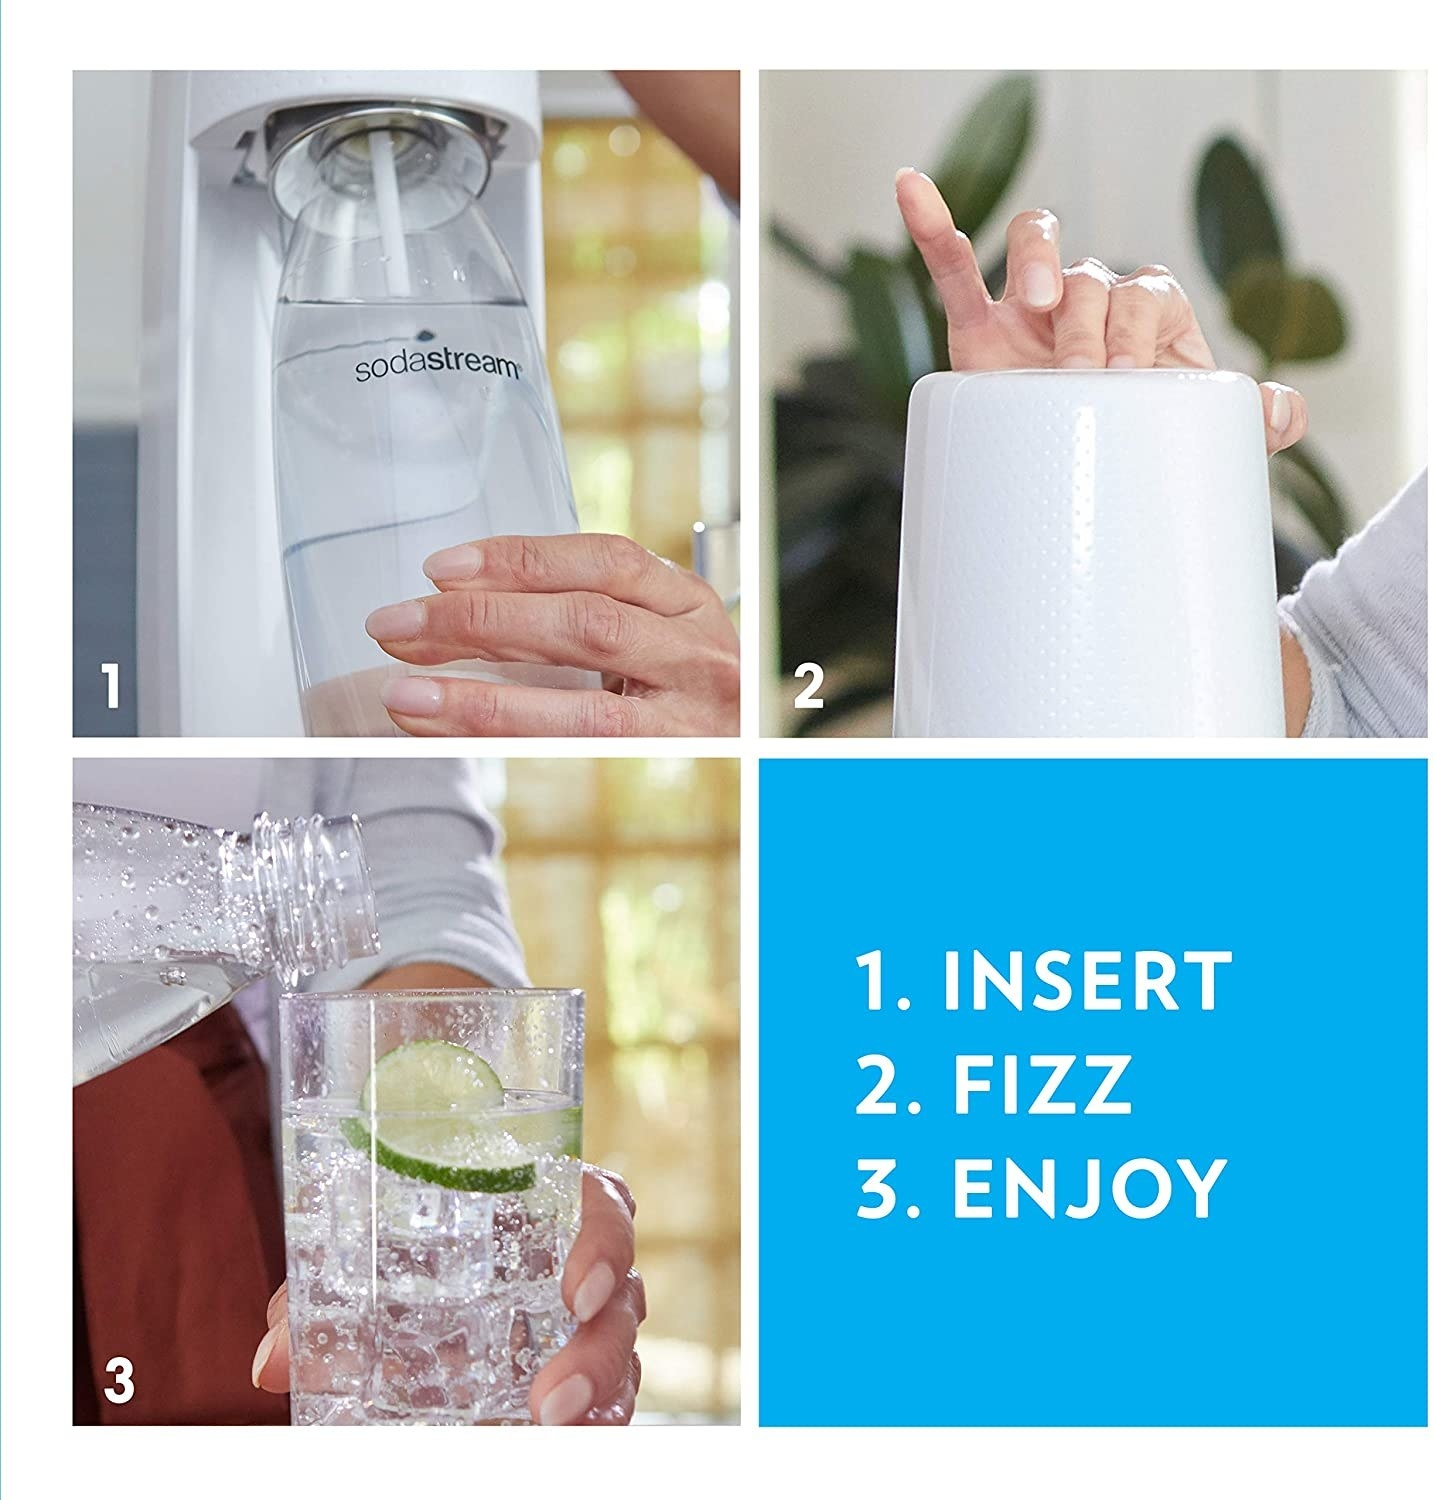 Infographic showing the three steps it takes to use it: insert the bottle, press the button to carbonate it, and then enjoy